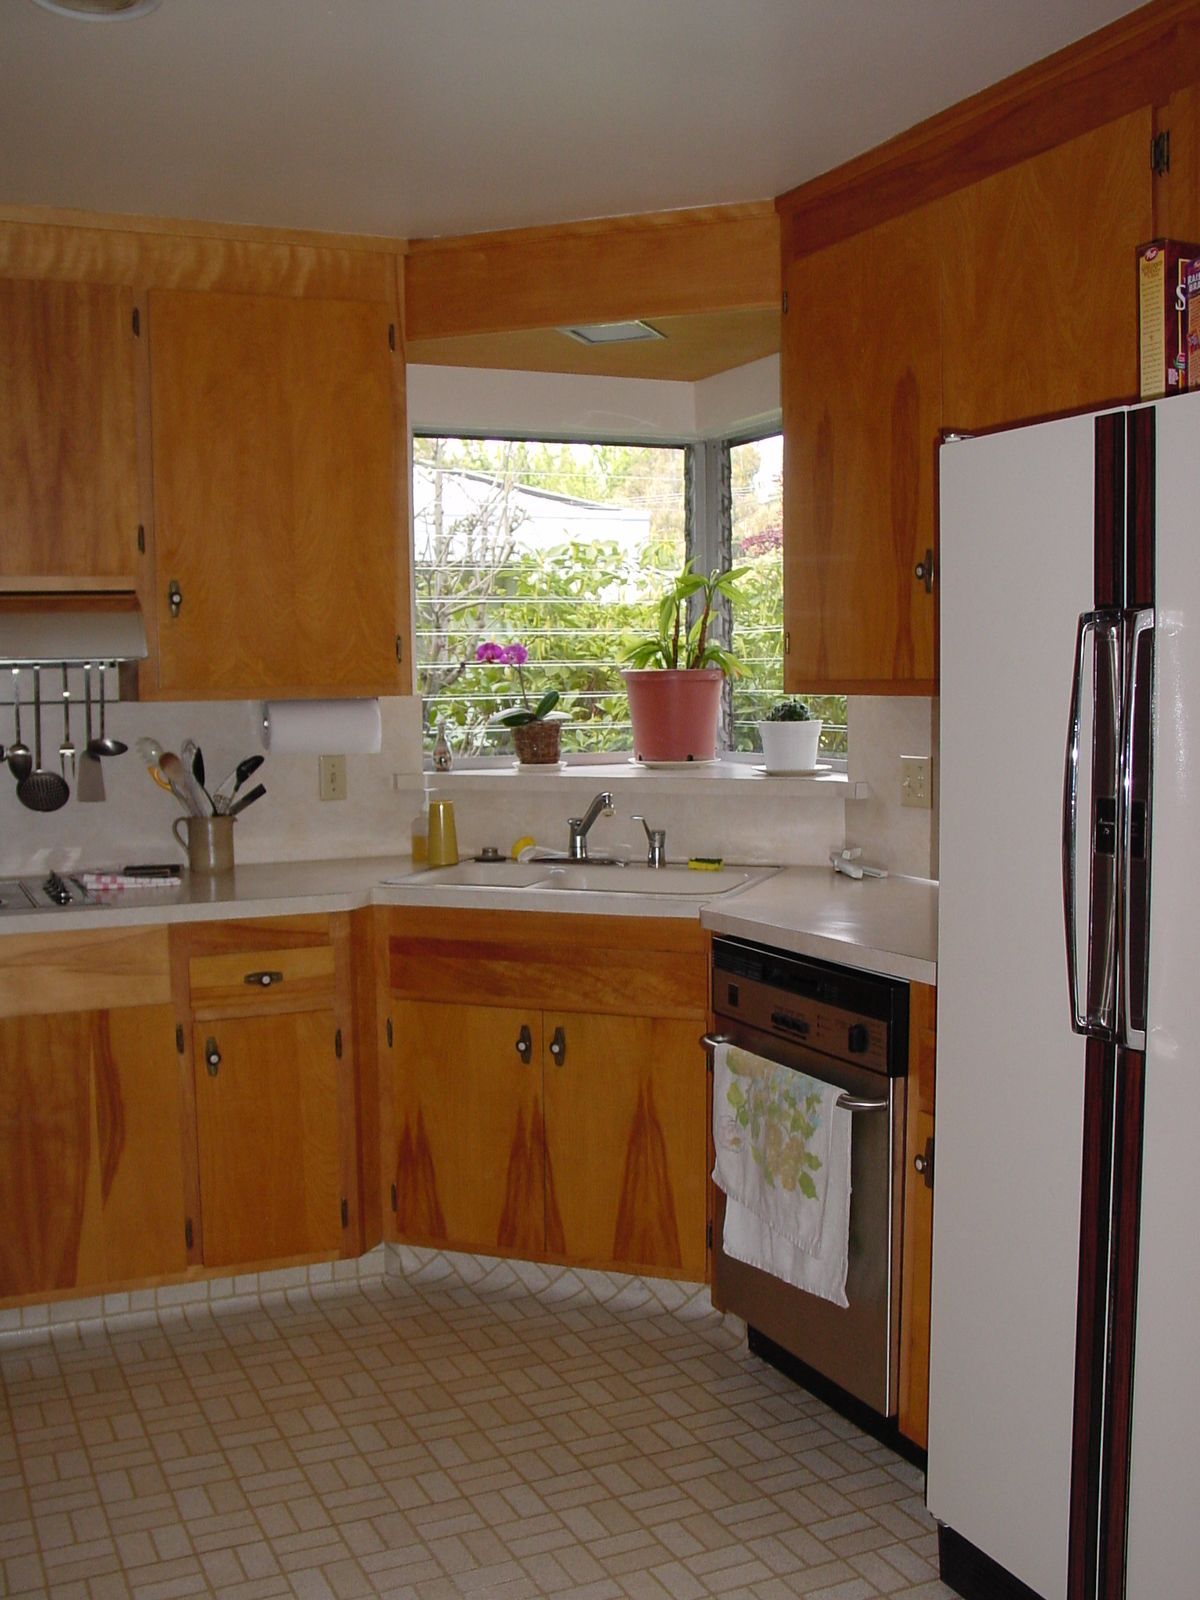 Image result for kitchen with corner sink and windows | Nana\'s ...